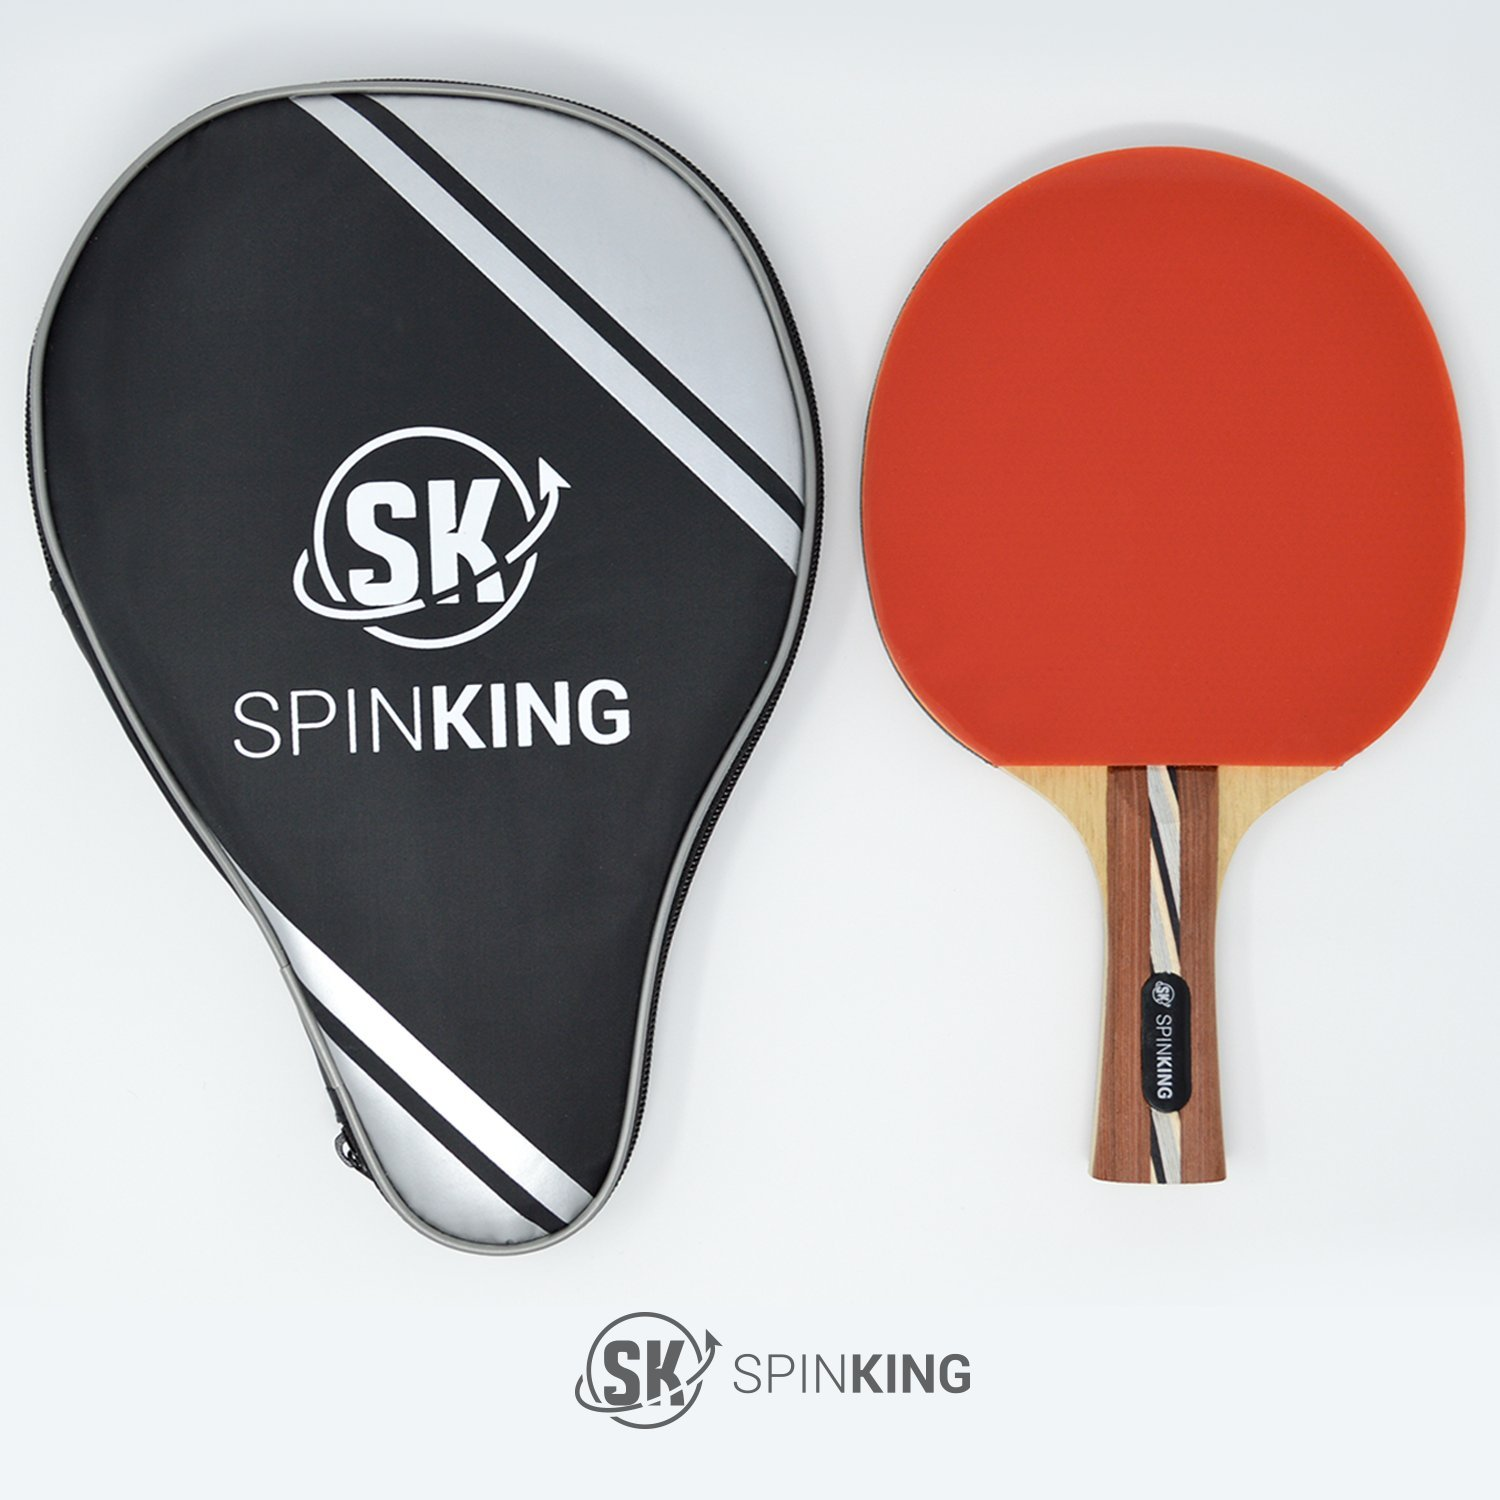 Table Tennis Paddle Kit - 7 Star Performance Ping Pong - with Free Case Included - Get The Second Kit 50% Off!